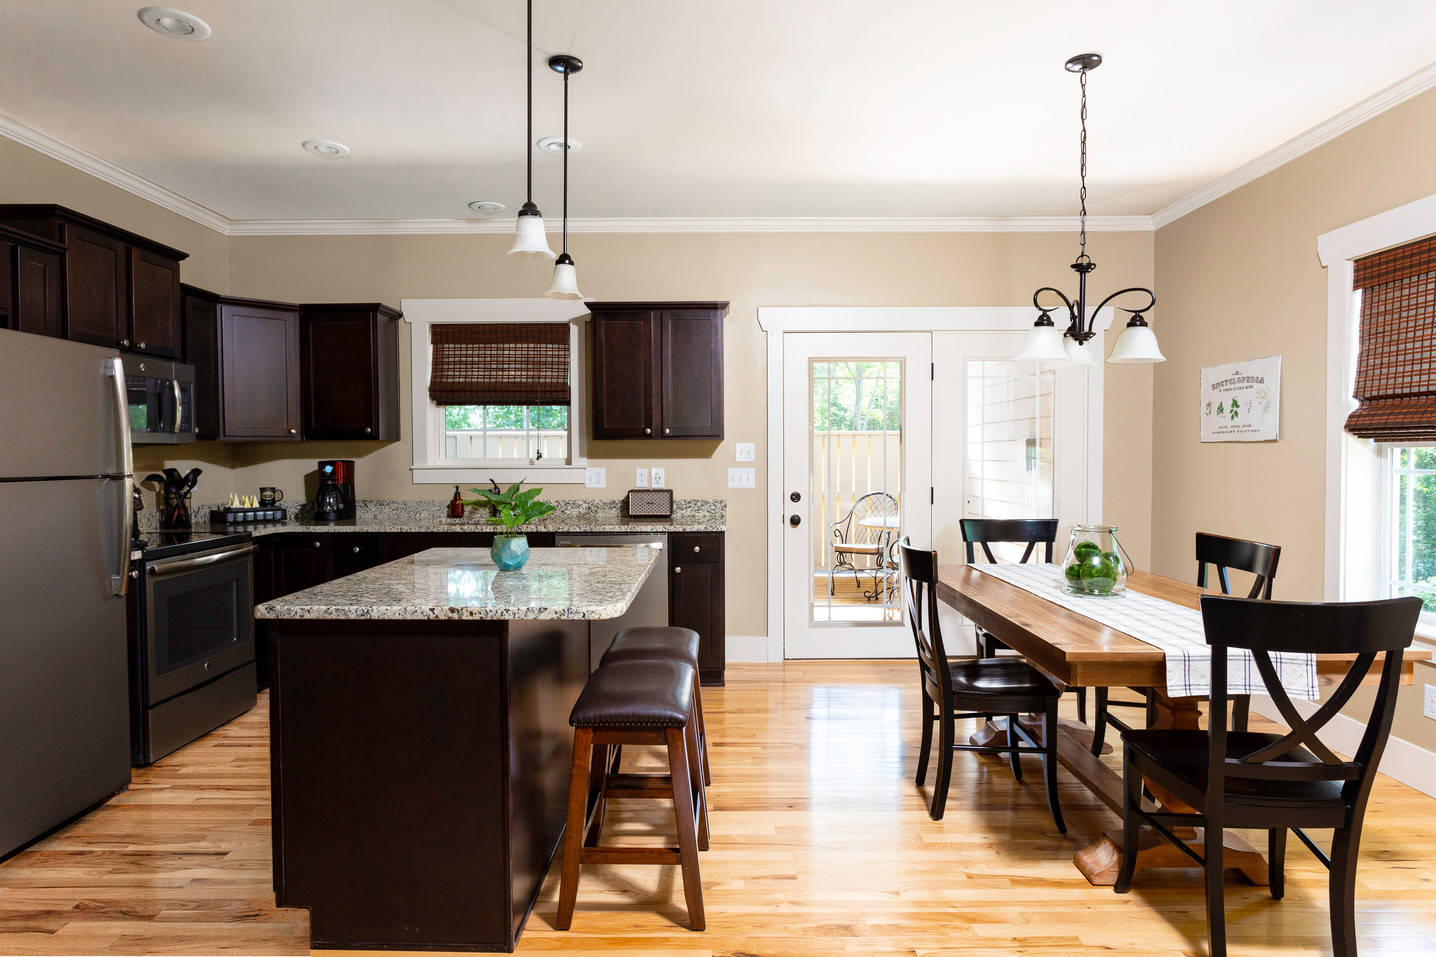 The Luxurious kitchen in the Hickory cabin